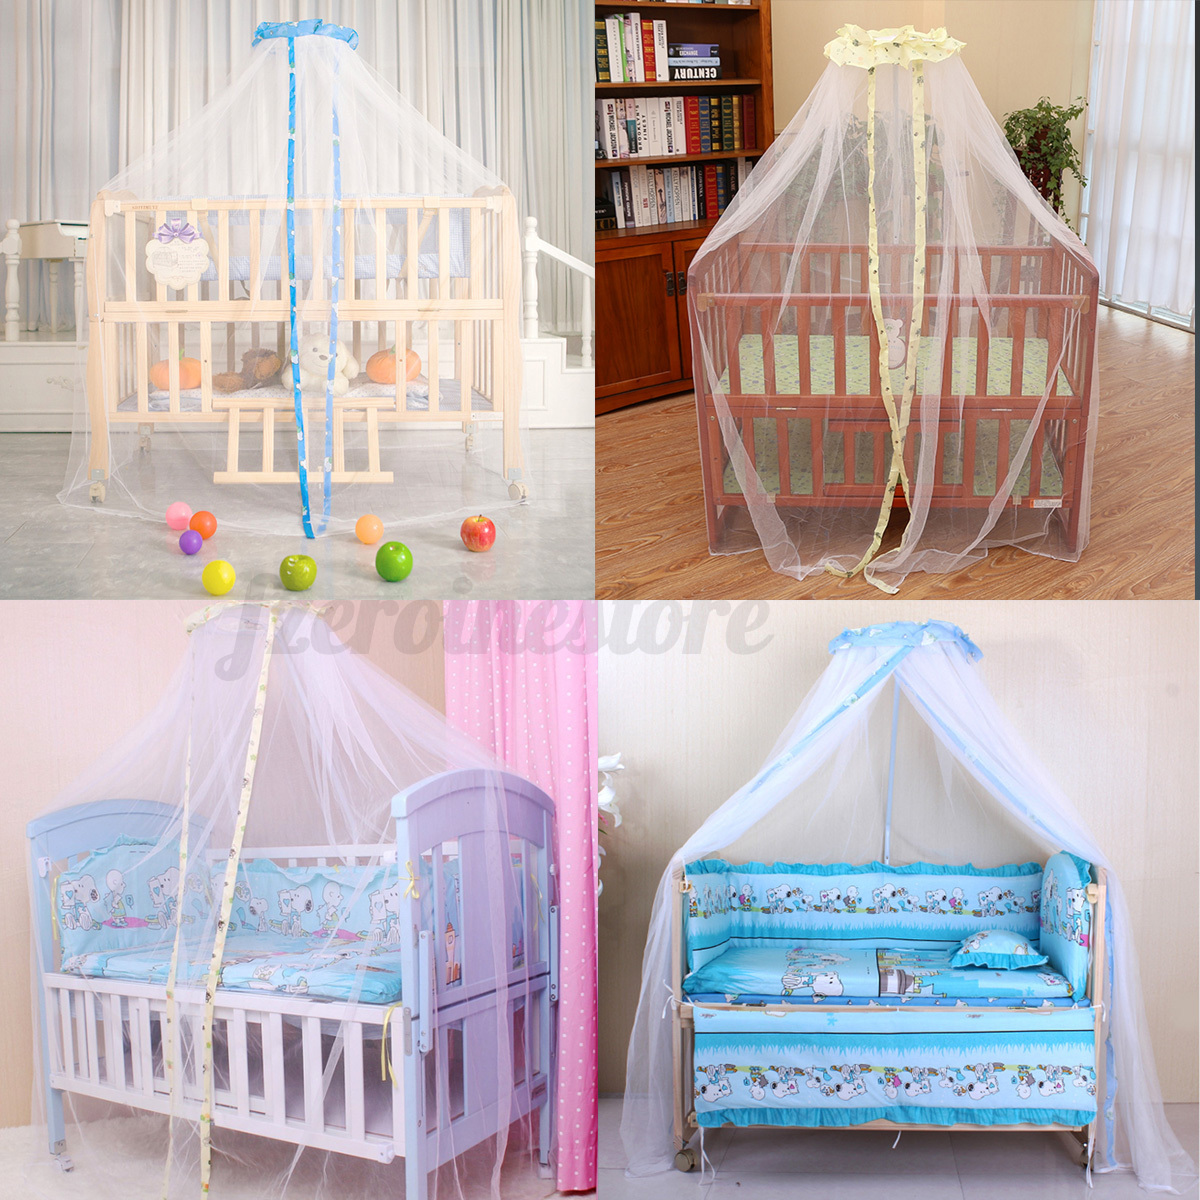 babybett betthimmel moskitonetz m ckennetz fliegennetz baby kinderbett neu ebay. Black Bedroom Furniture Sets. Home Design Ideas